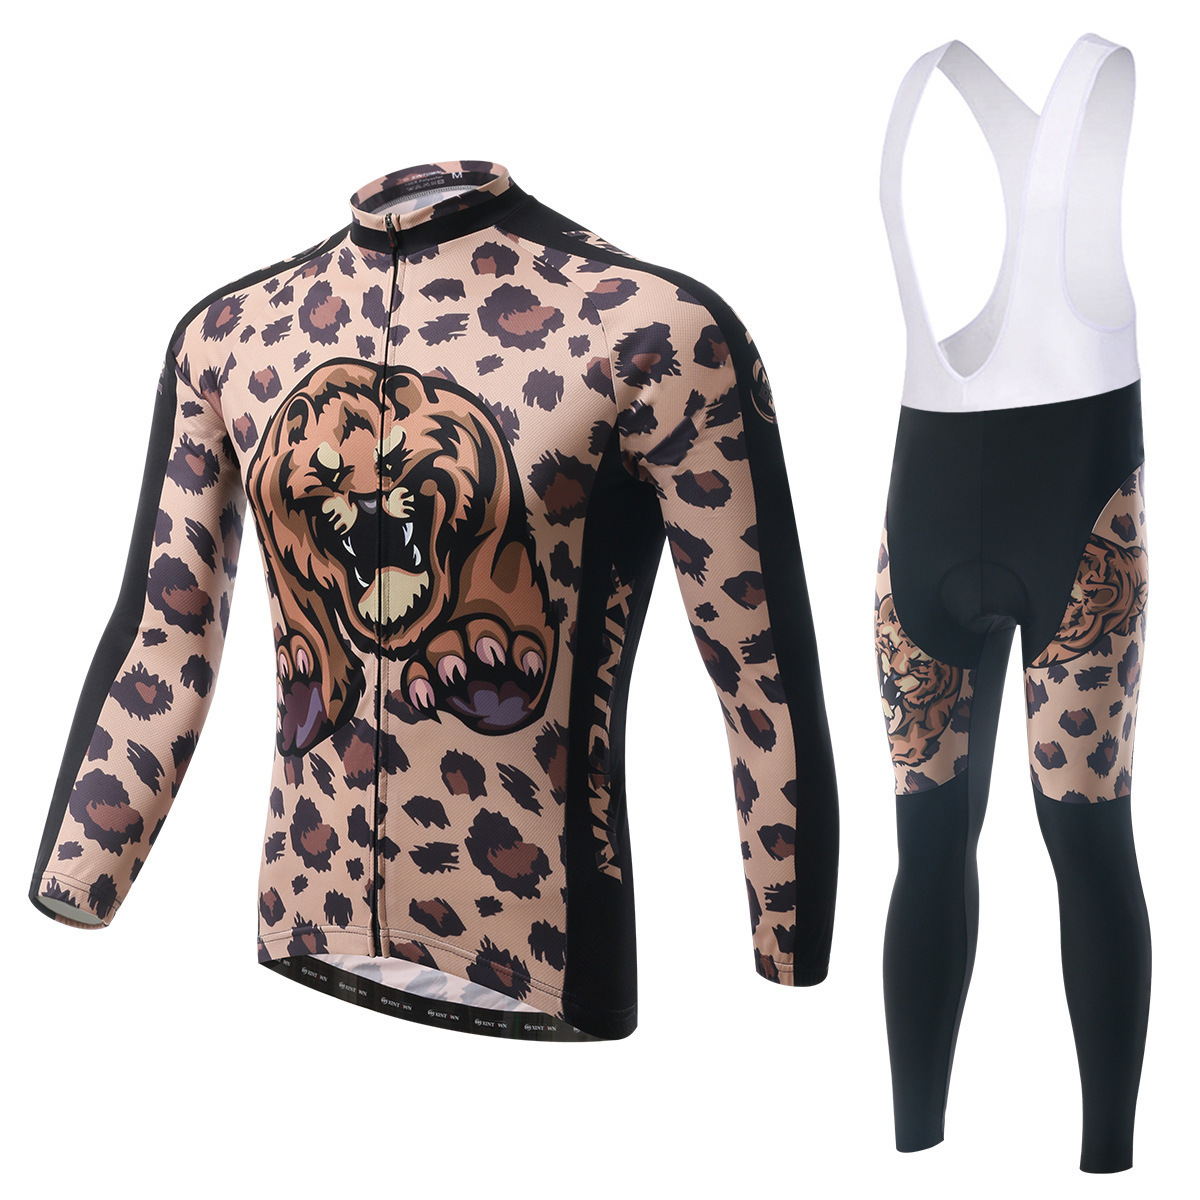 BOODUN Brown Leopard Riding Suit Straps Long Sleeve Suit Bicycle Serve Catch Down Windbreak Keep Warm Function Underwear